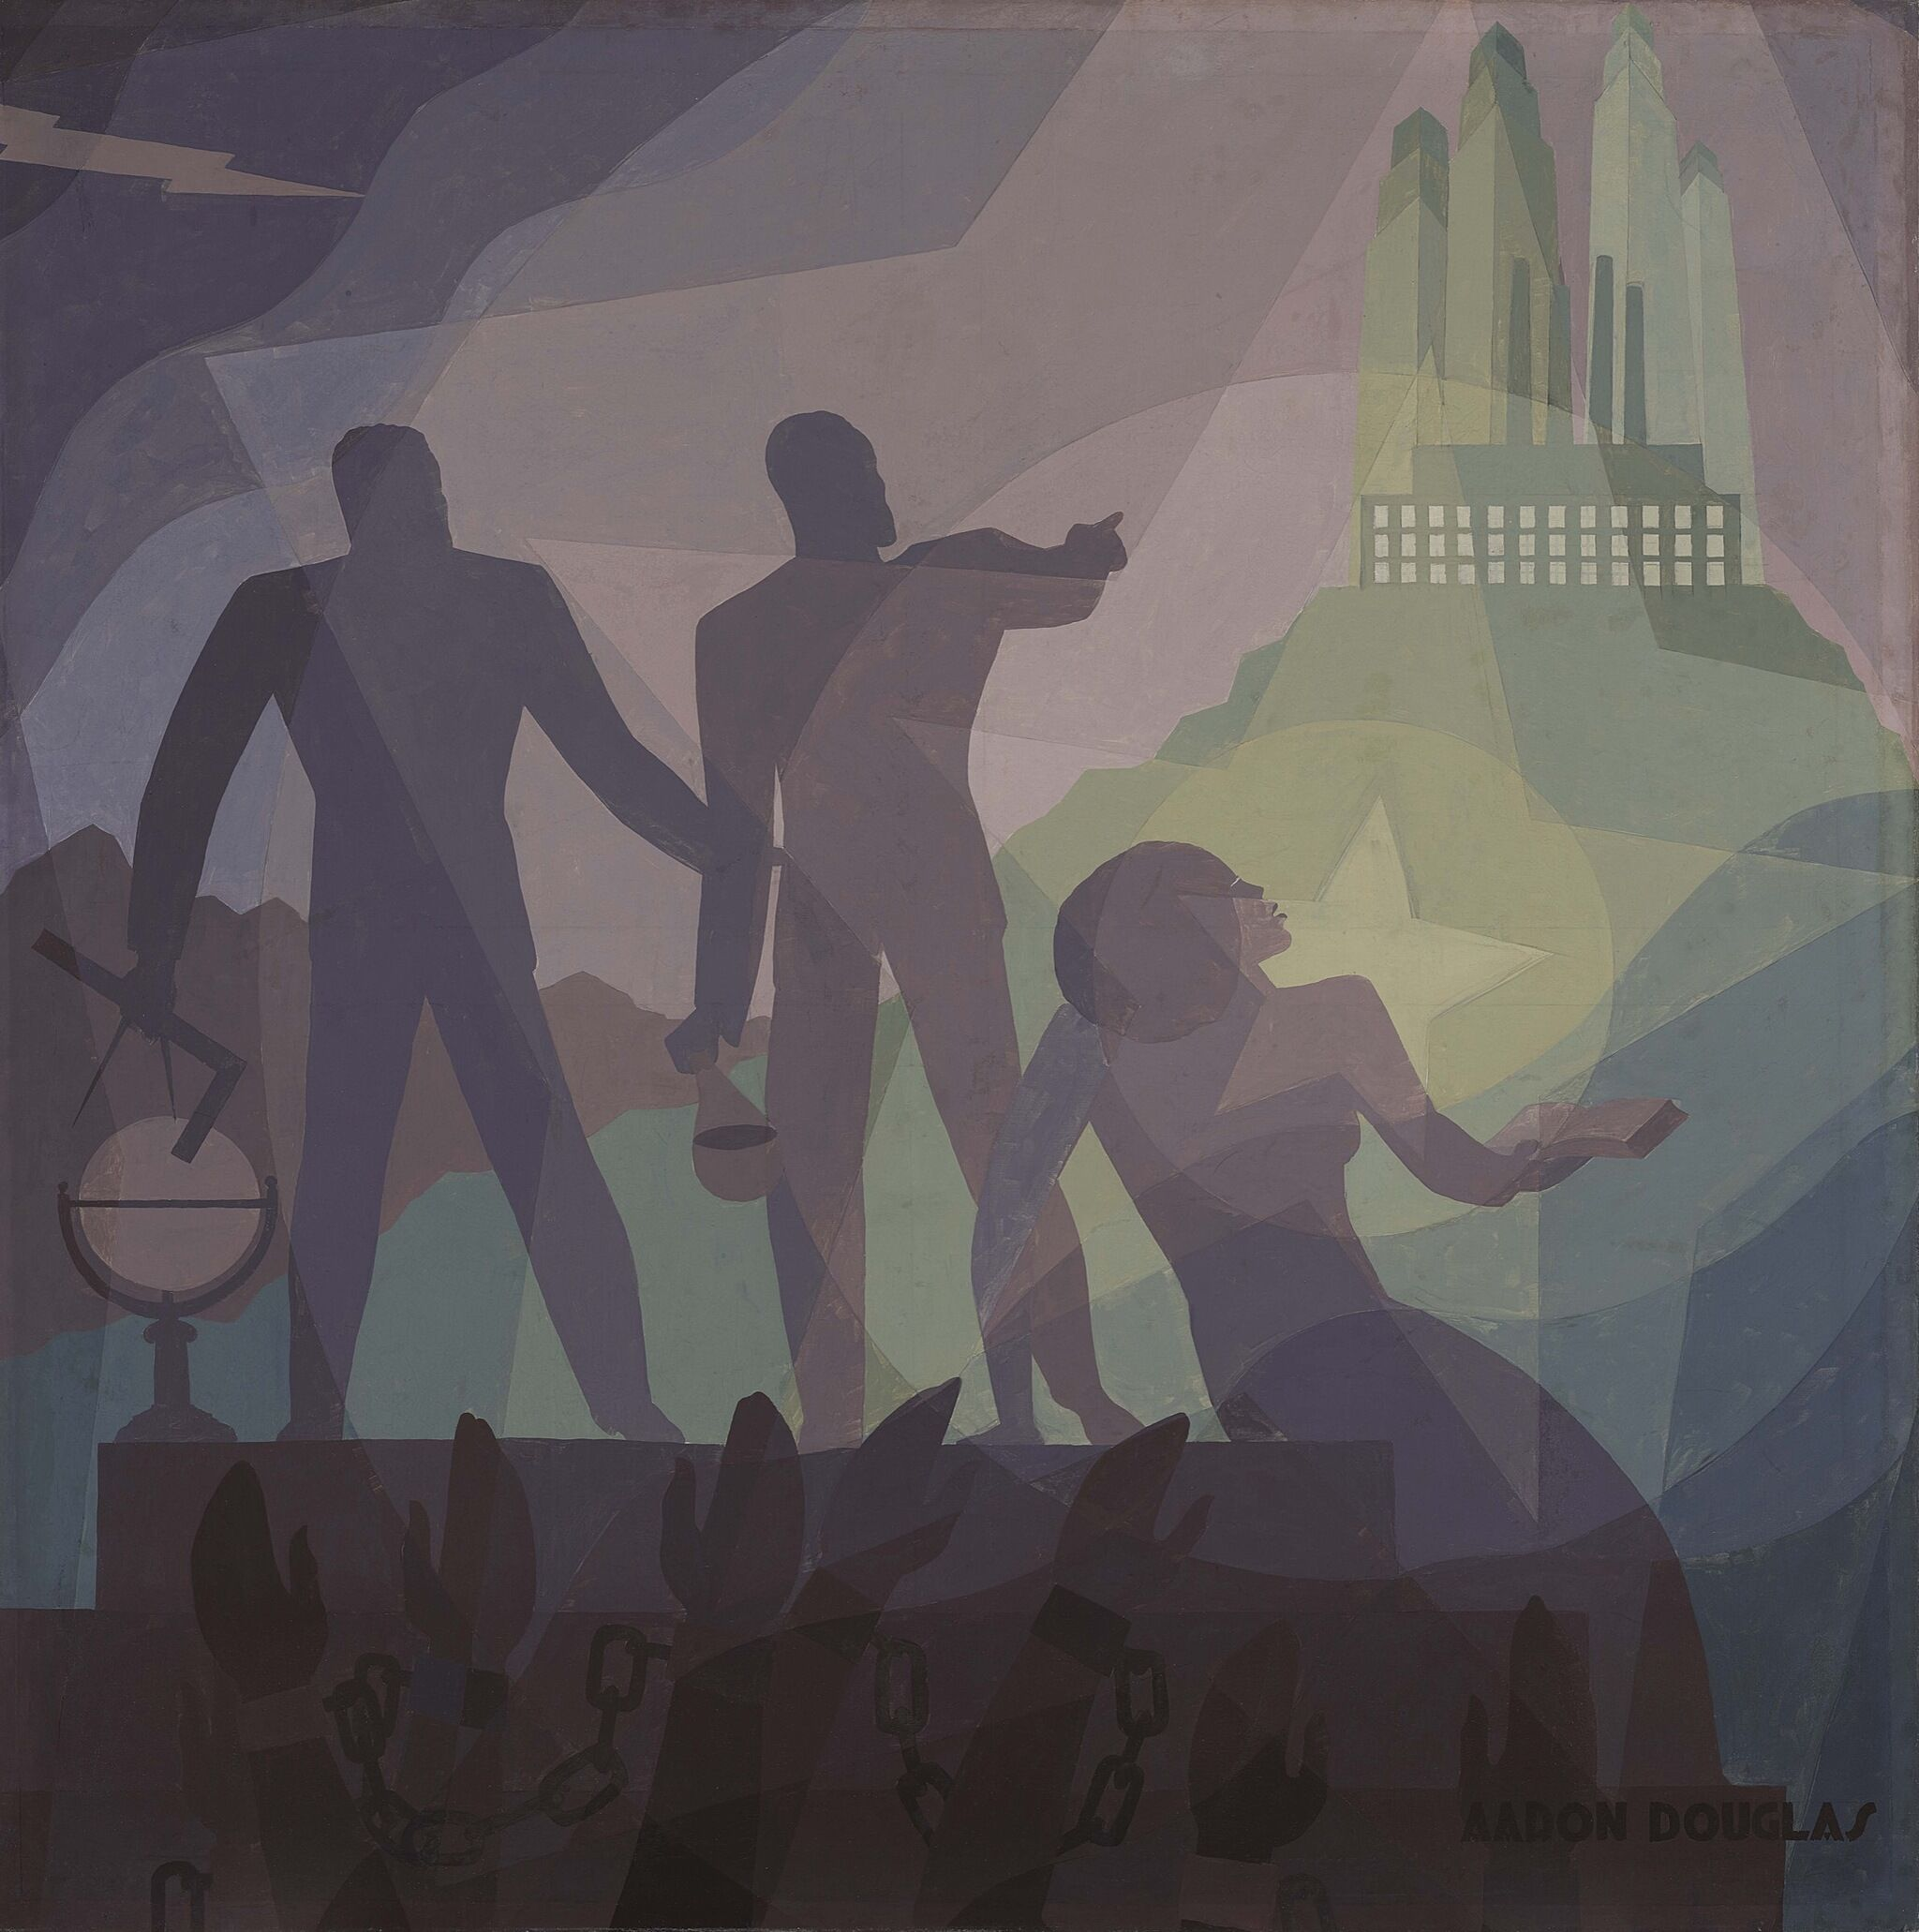 A painting depicting a crowd in chains and three individuals standing pointing at skyscrapers in the distance.